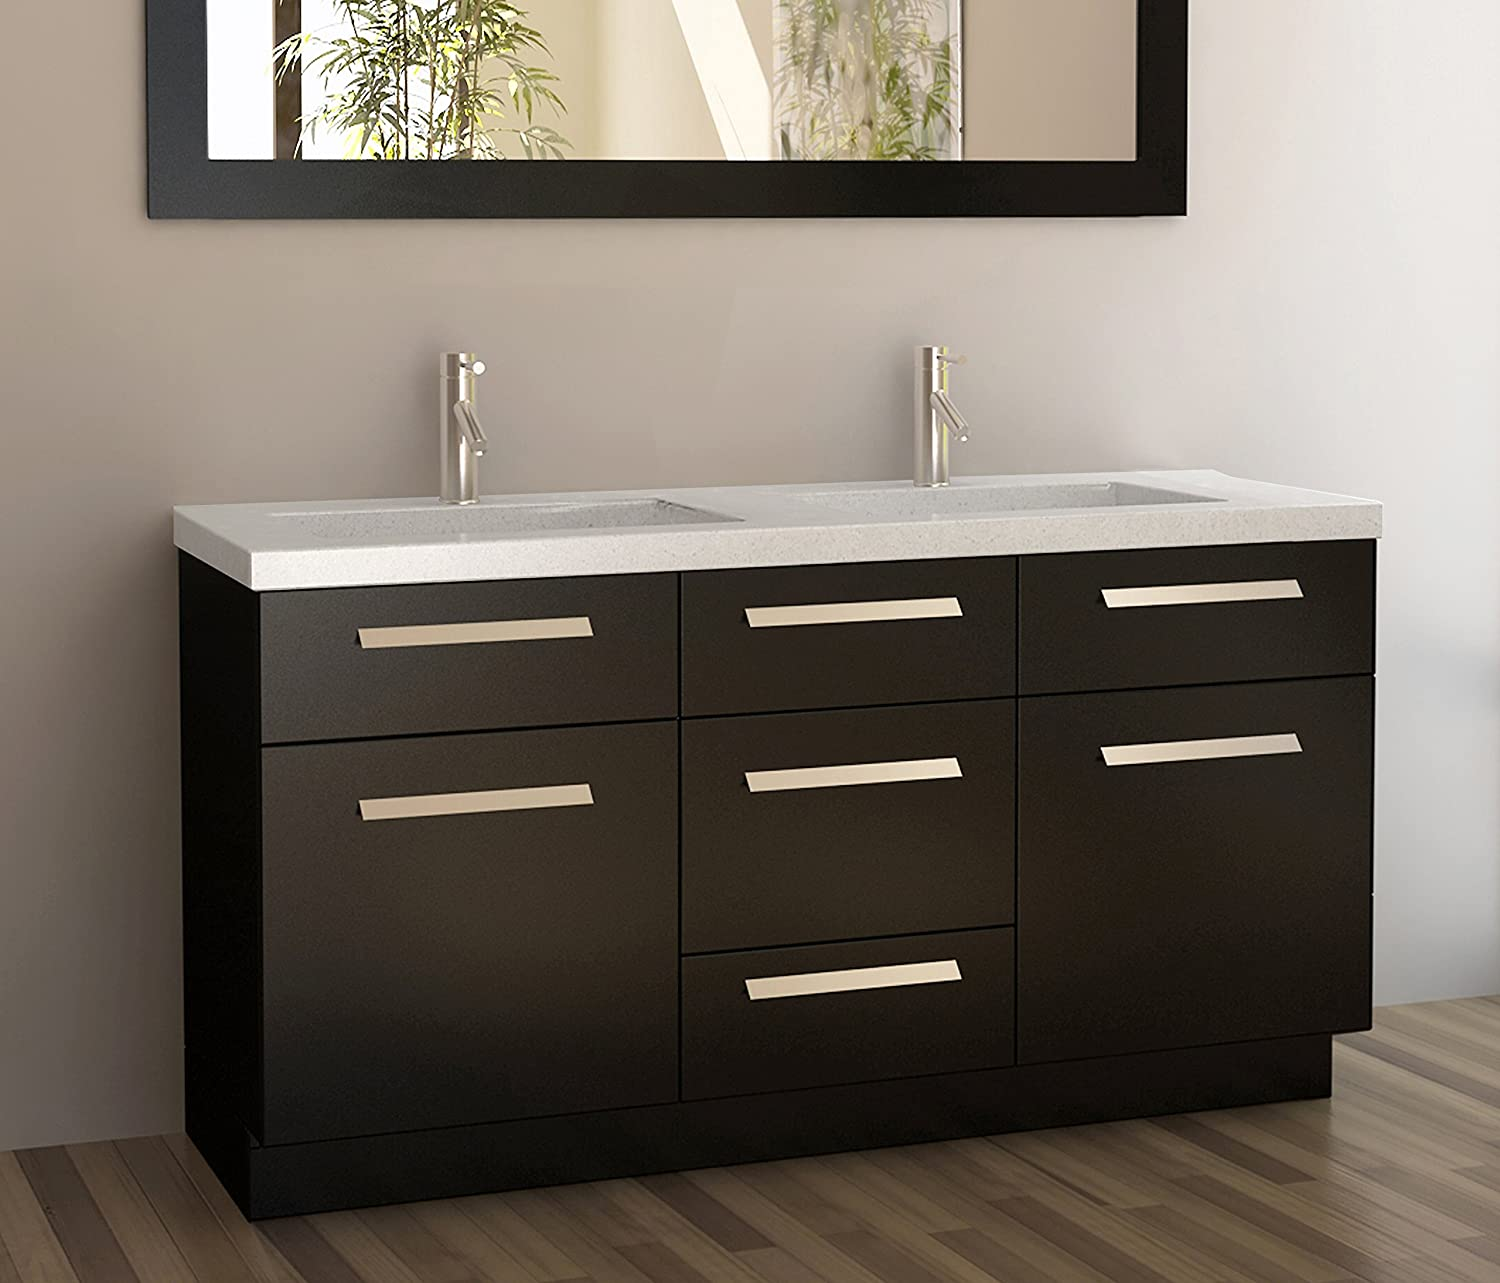 Superbe Design Element Moscony Double Sink Vanity Set With Espresso Finish, 60 Inch    Bathroom Vanities   Amazon.com